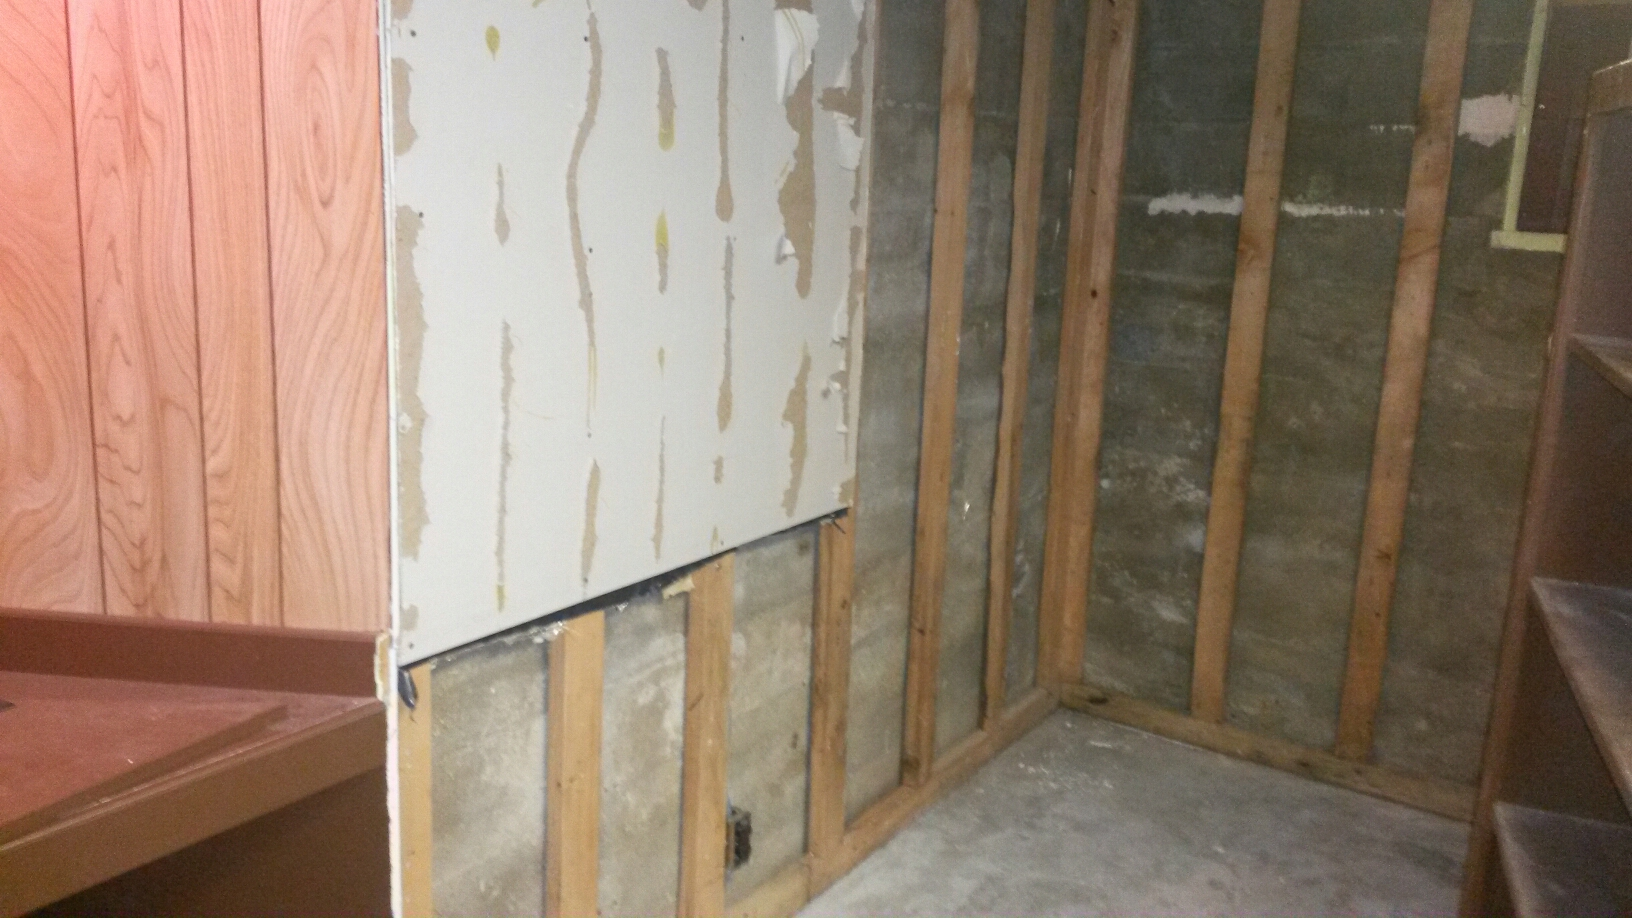 Midvale, UT - We finally have the repair estimate from the adjuster, so we can start working on the repairs. The challenge will be the panelling. If we can't match it closely enough, which isn't likely,  then the rest of the paneling will need to be replaced as well. Each water damage is different, but whatever it takes to make it as good as it was before is what we do.